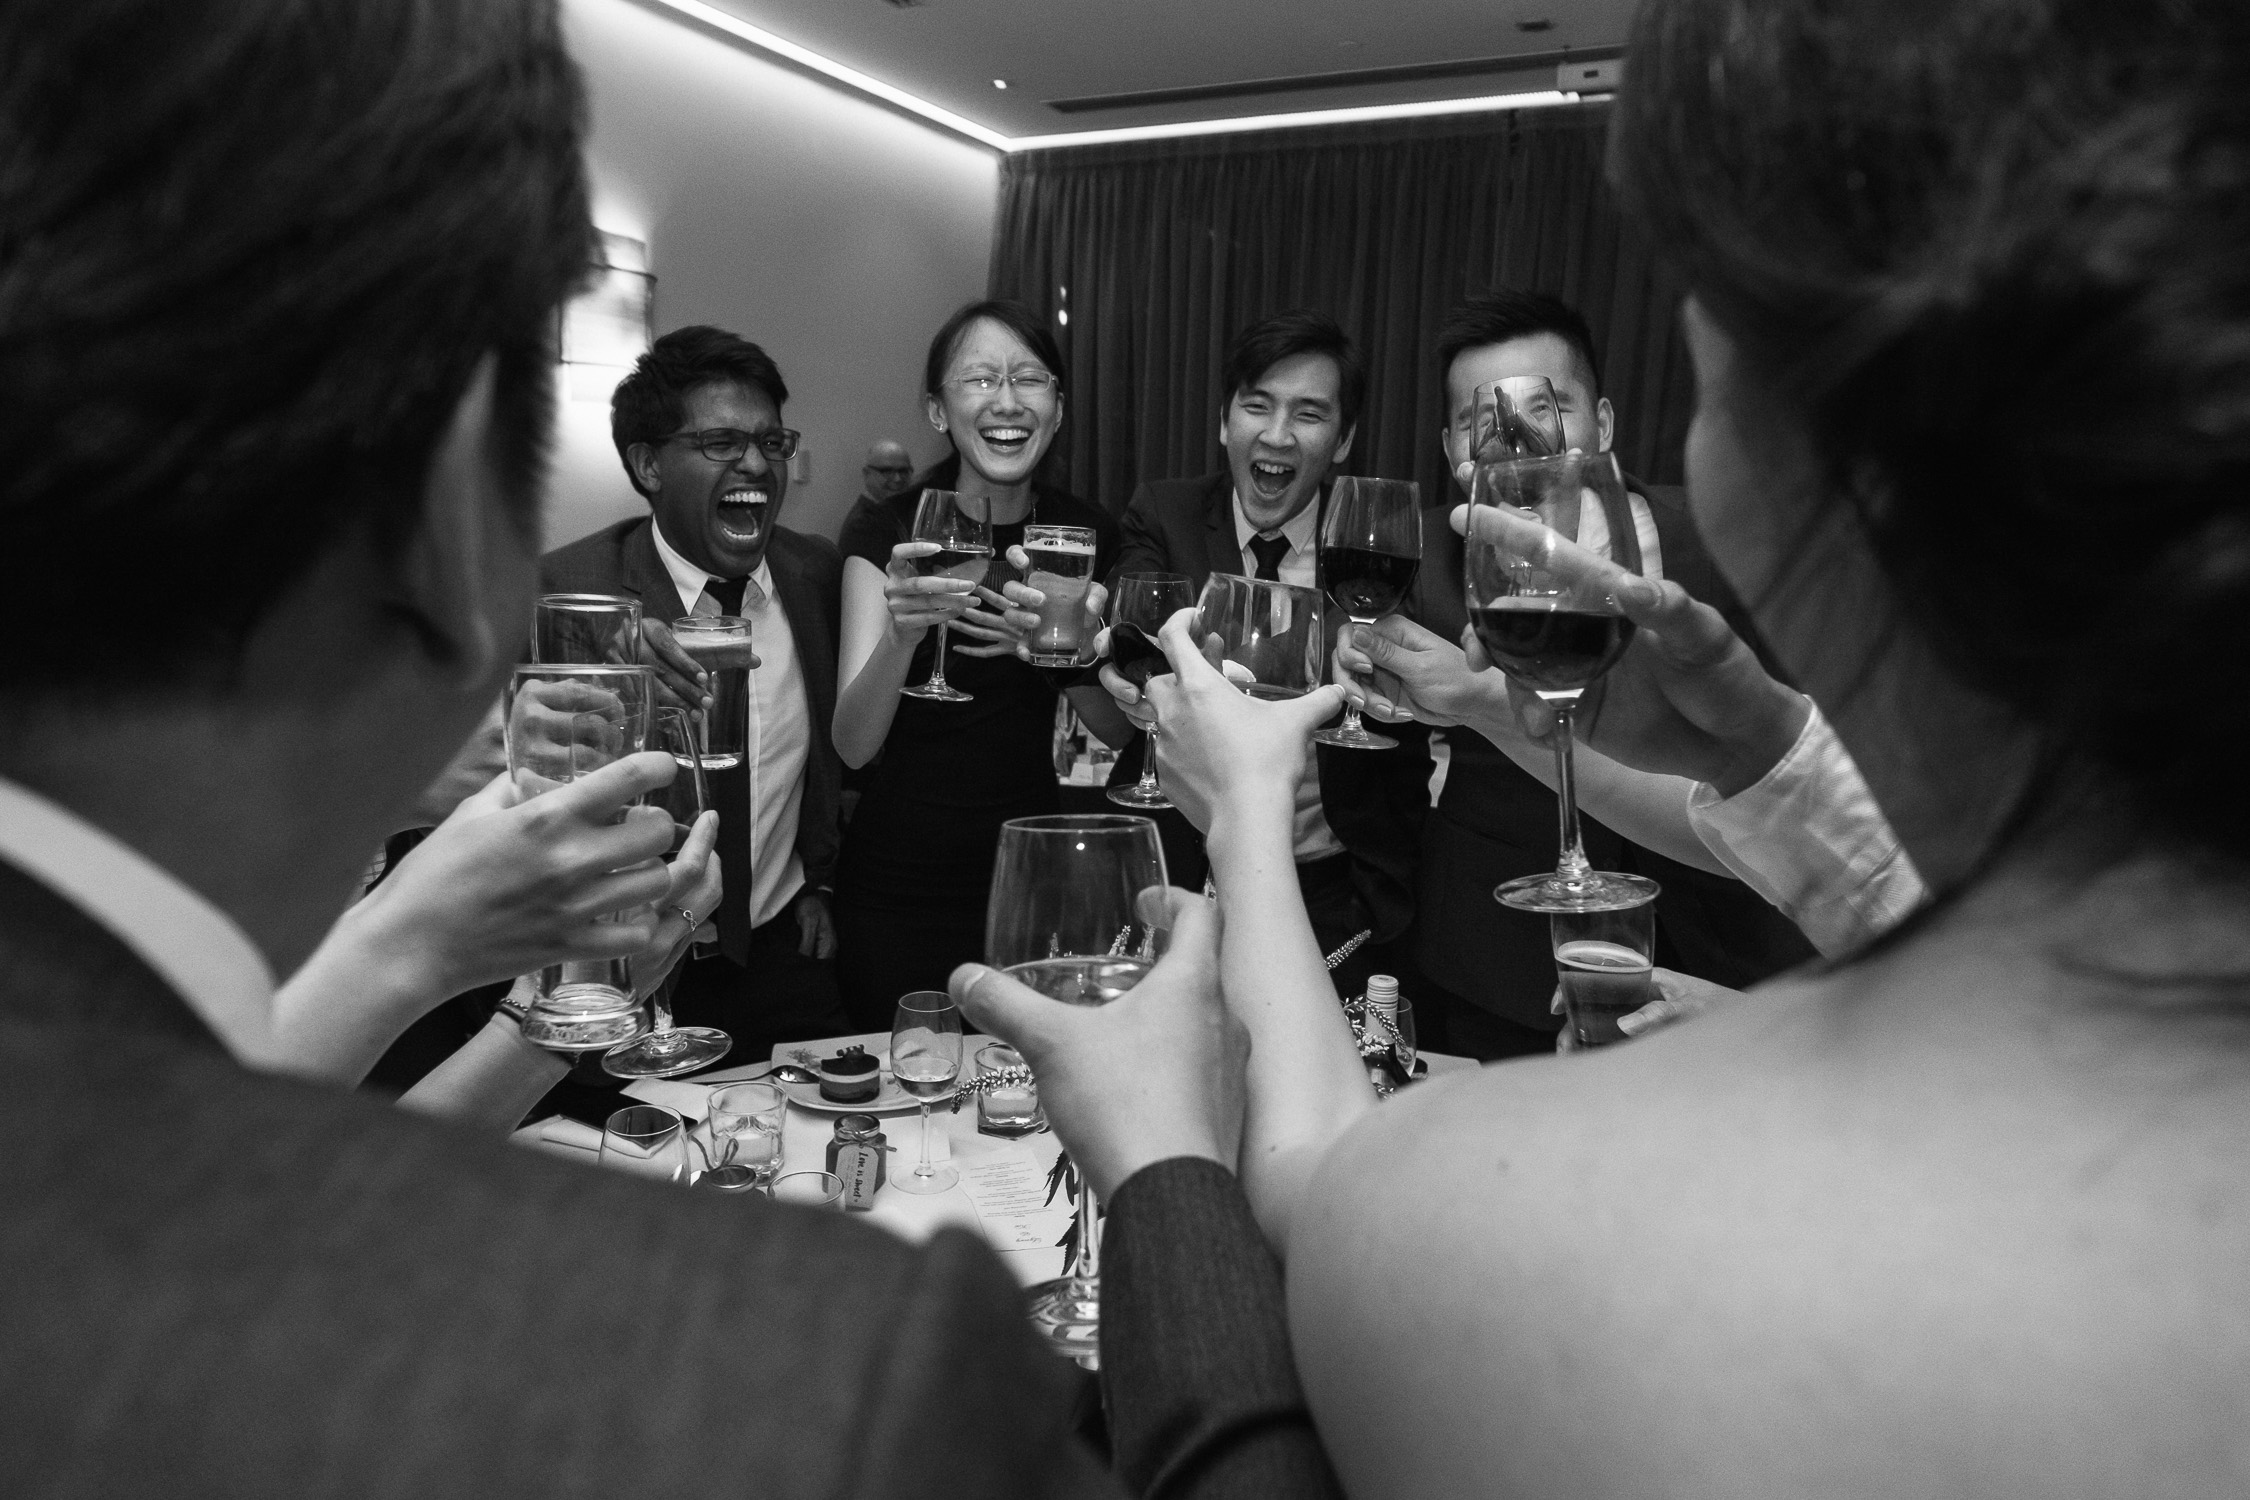 Lynsey and Kai's Melbourne wedding - yumseng cheers at wedding reception at the Marriott Hotel